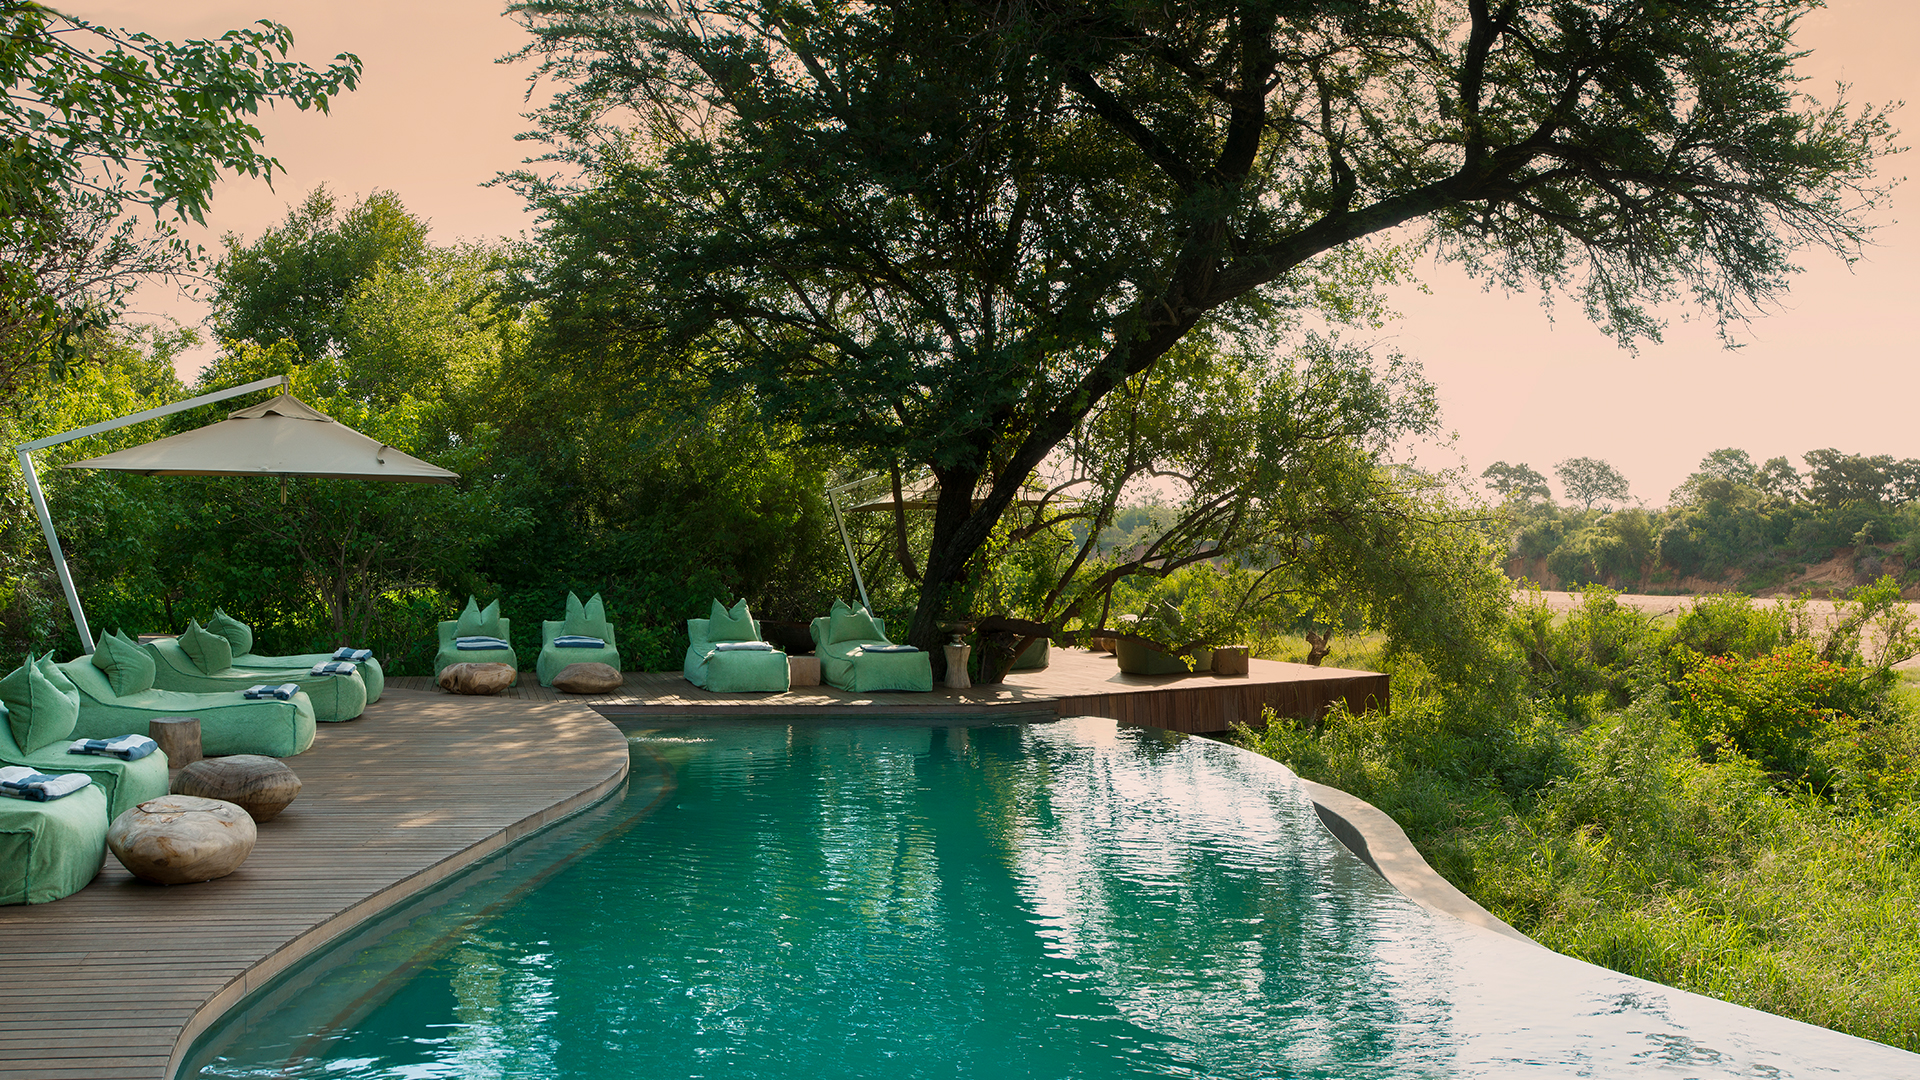 &Beyond Ngala Tented camp - Afrique du Sud